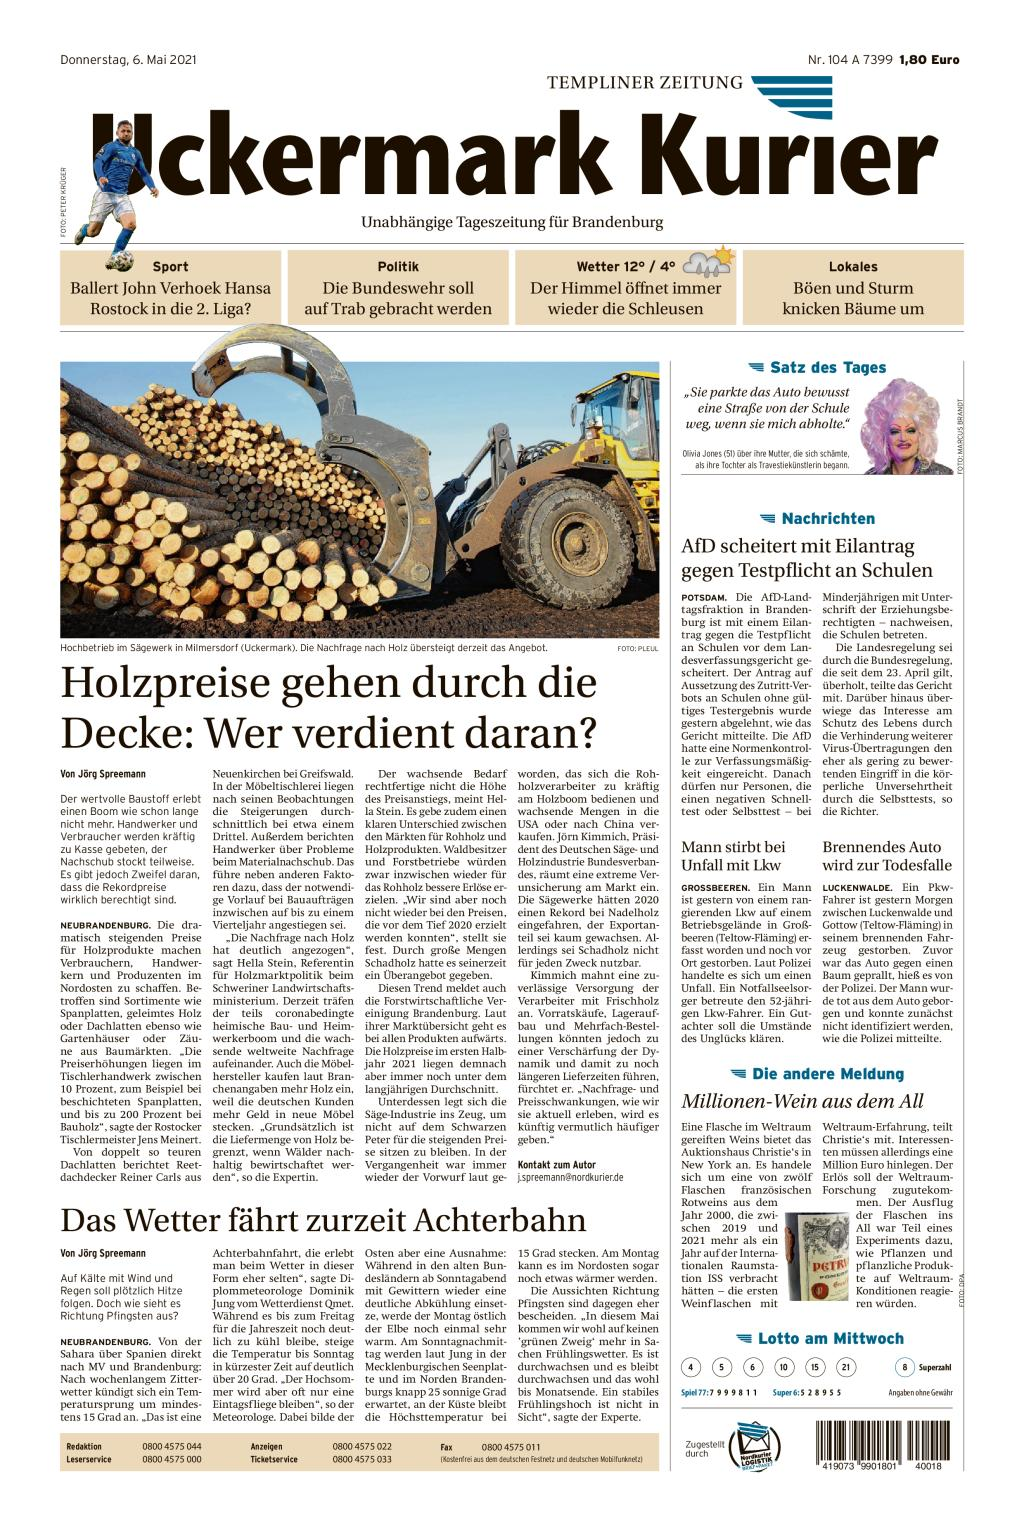 Titelseite: Uckermark Kurier